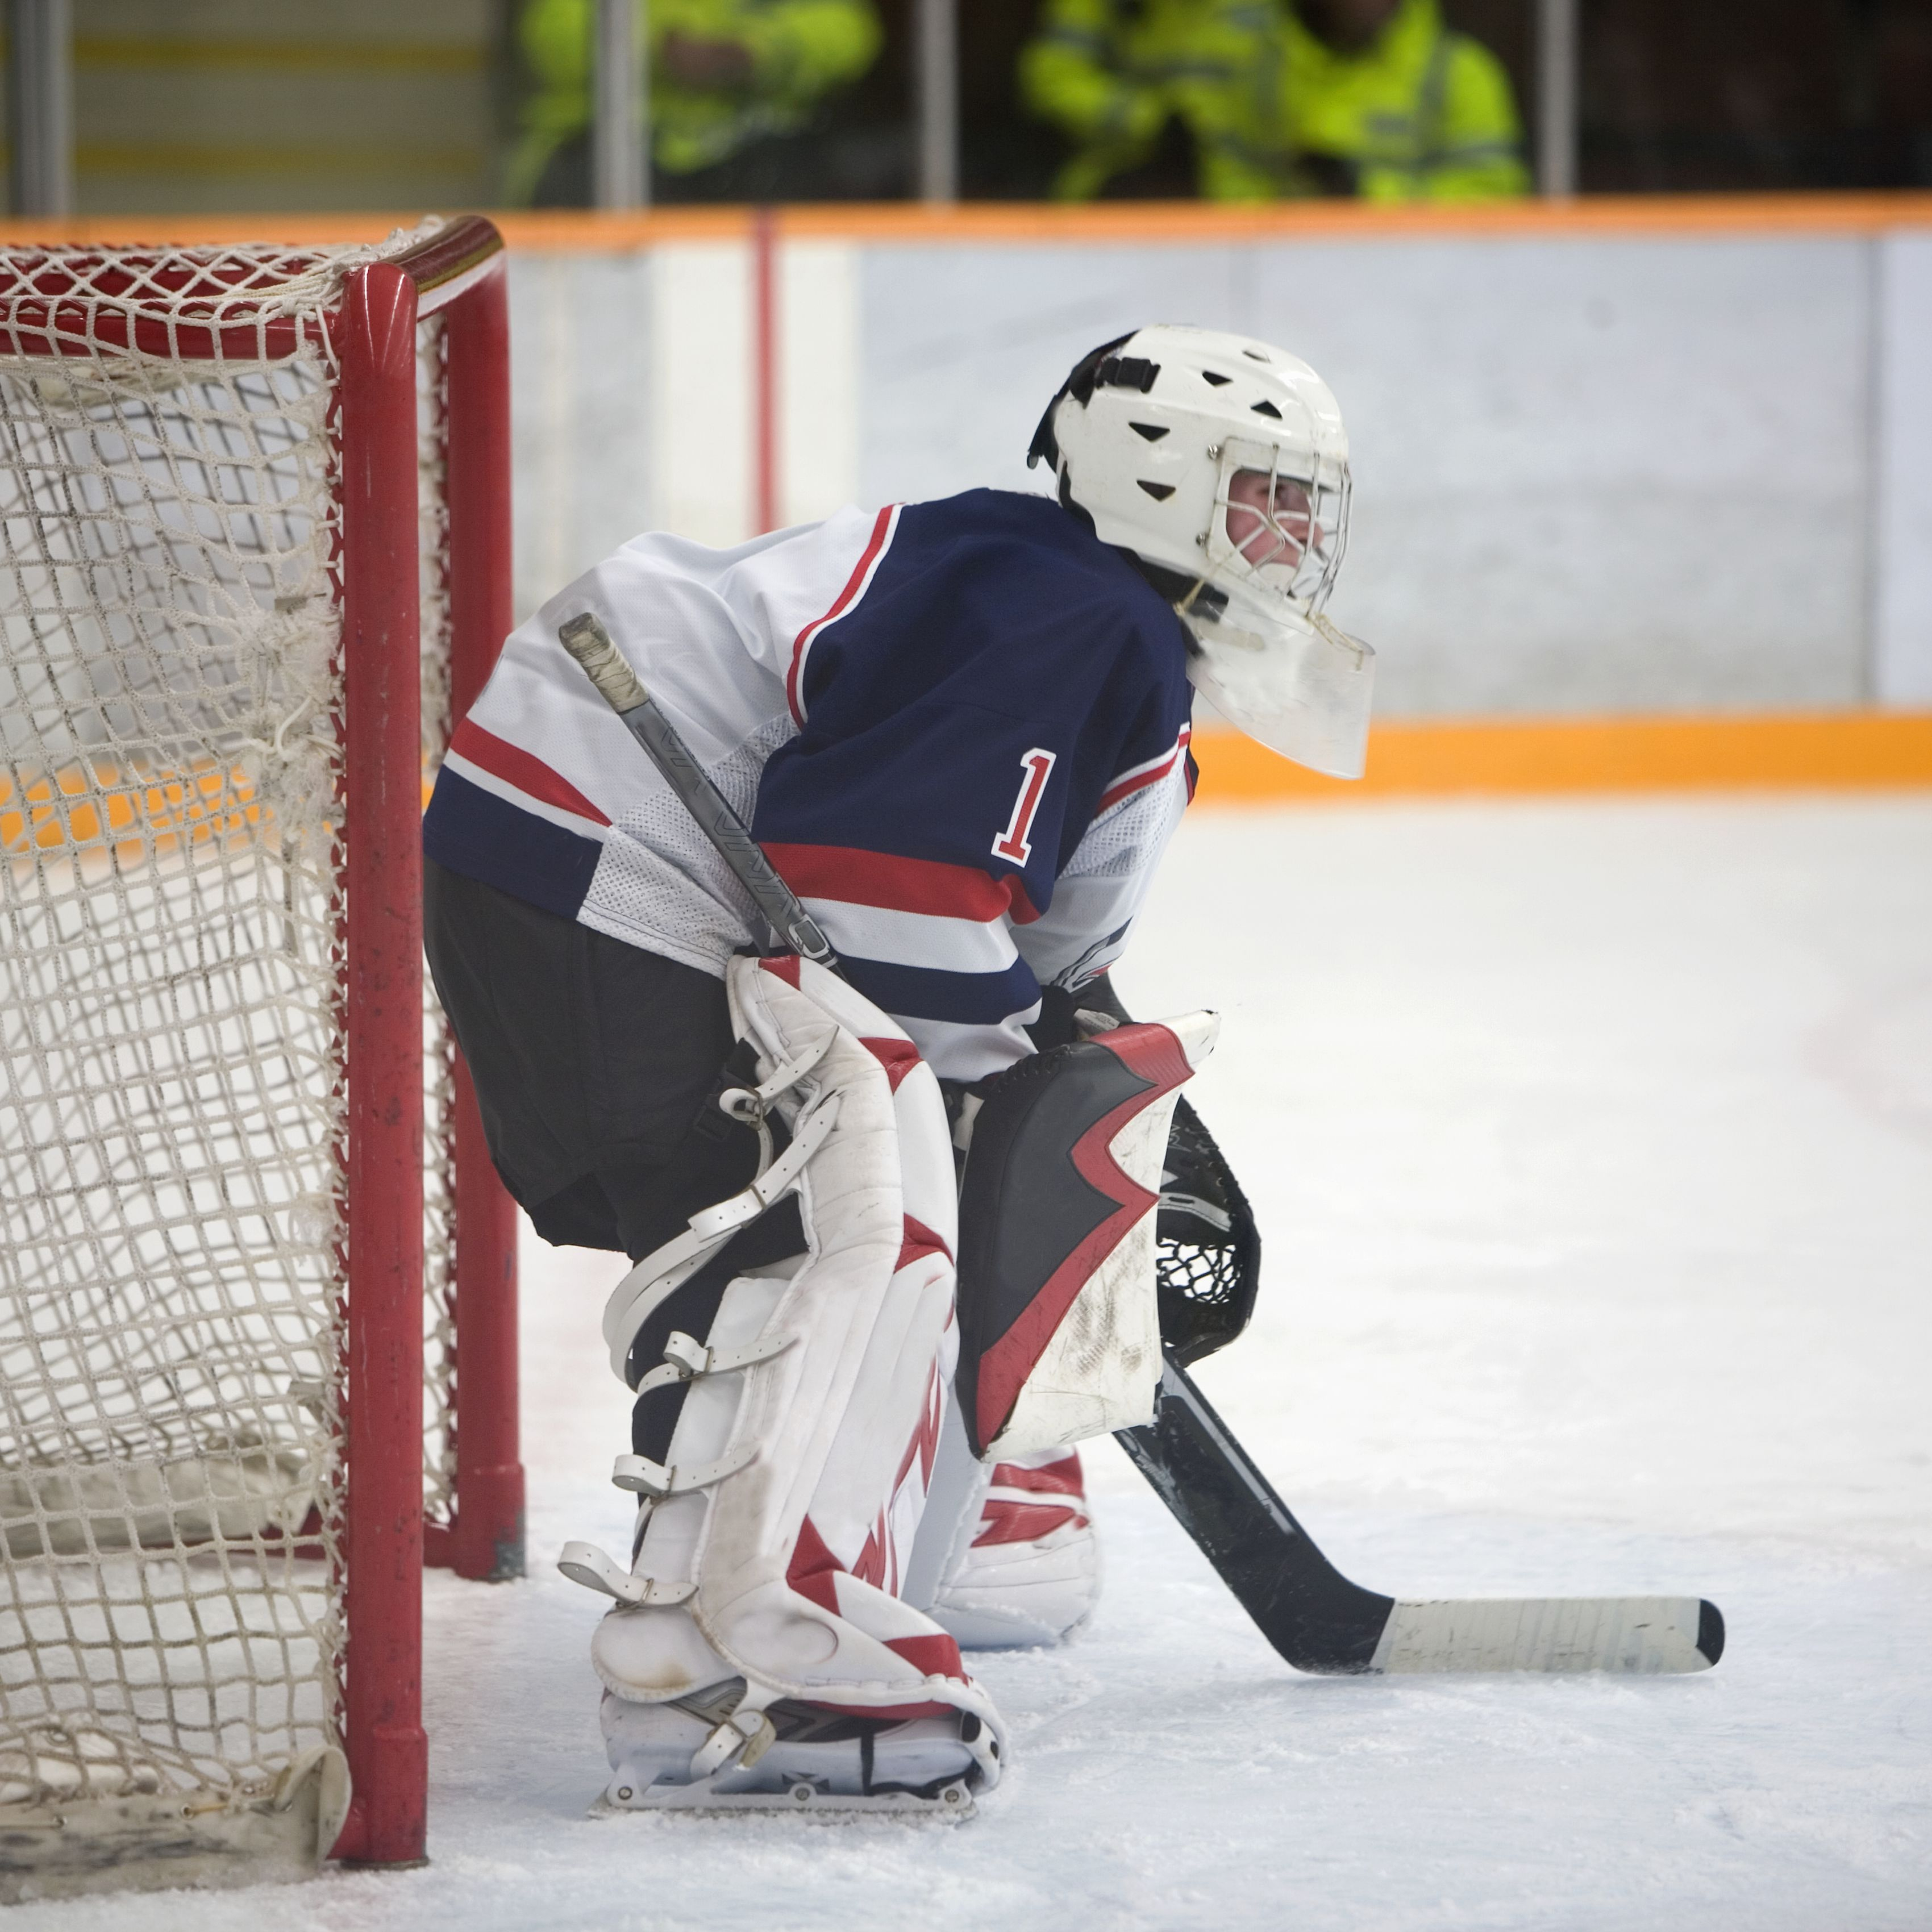 Essential Ice Hockey Safety Equipment And Gear